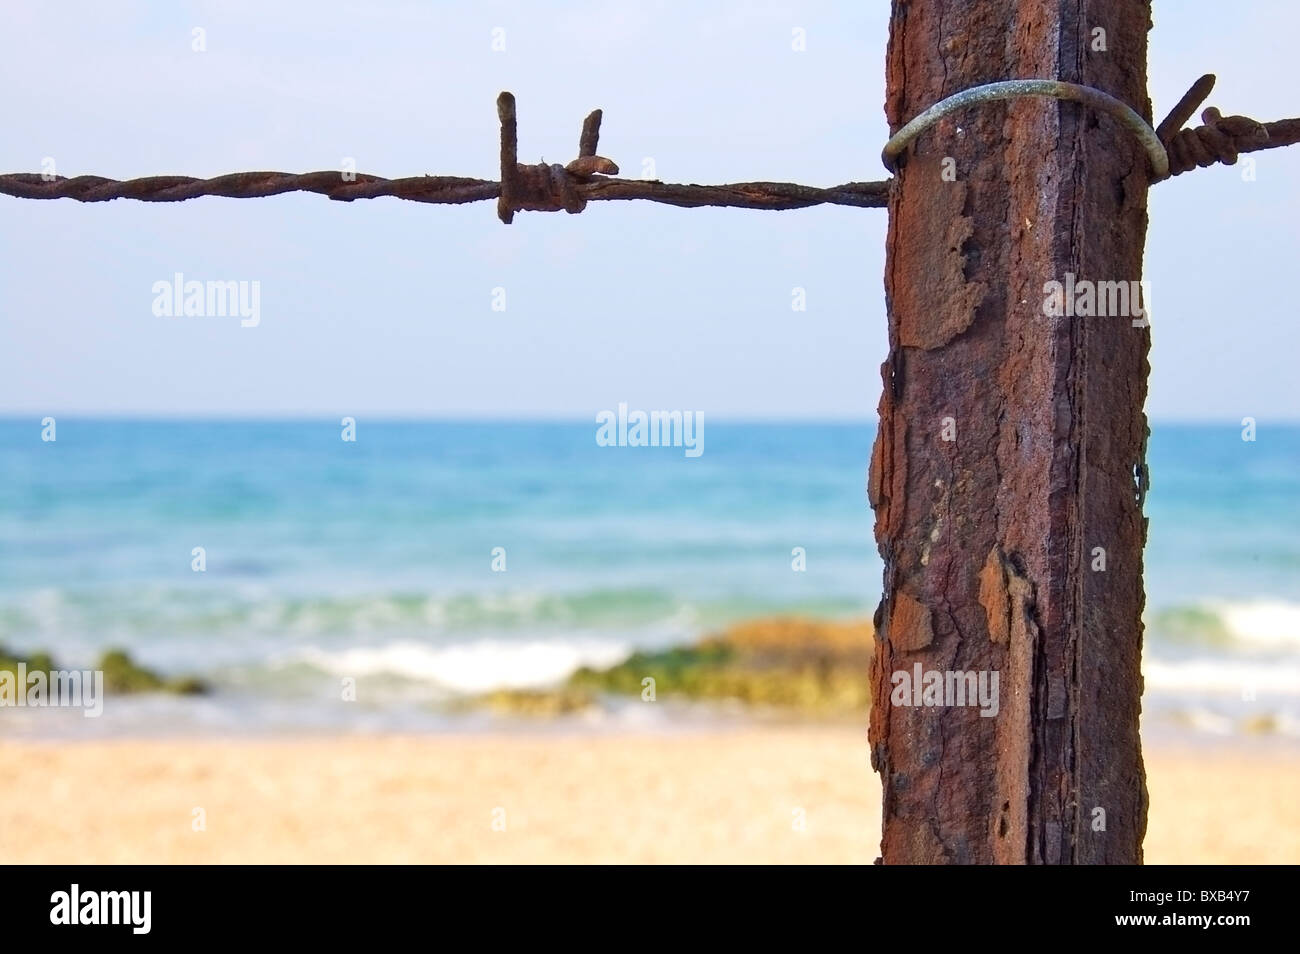 Wire fence blocking the beach, selective focus - Stock Image